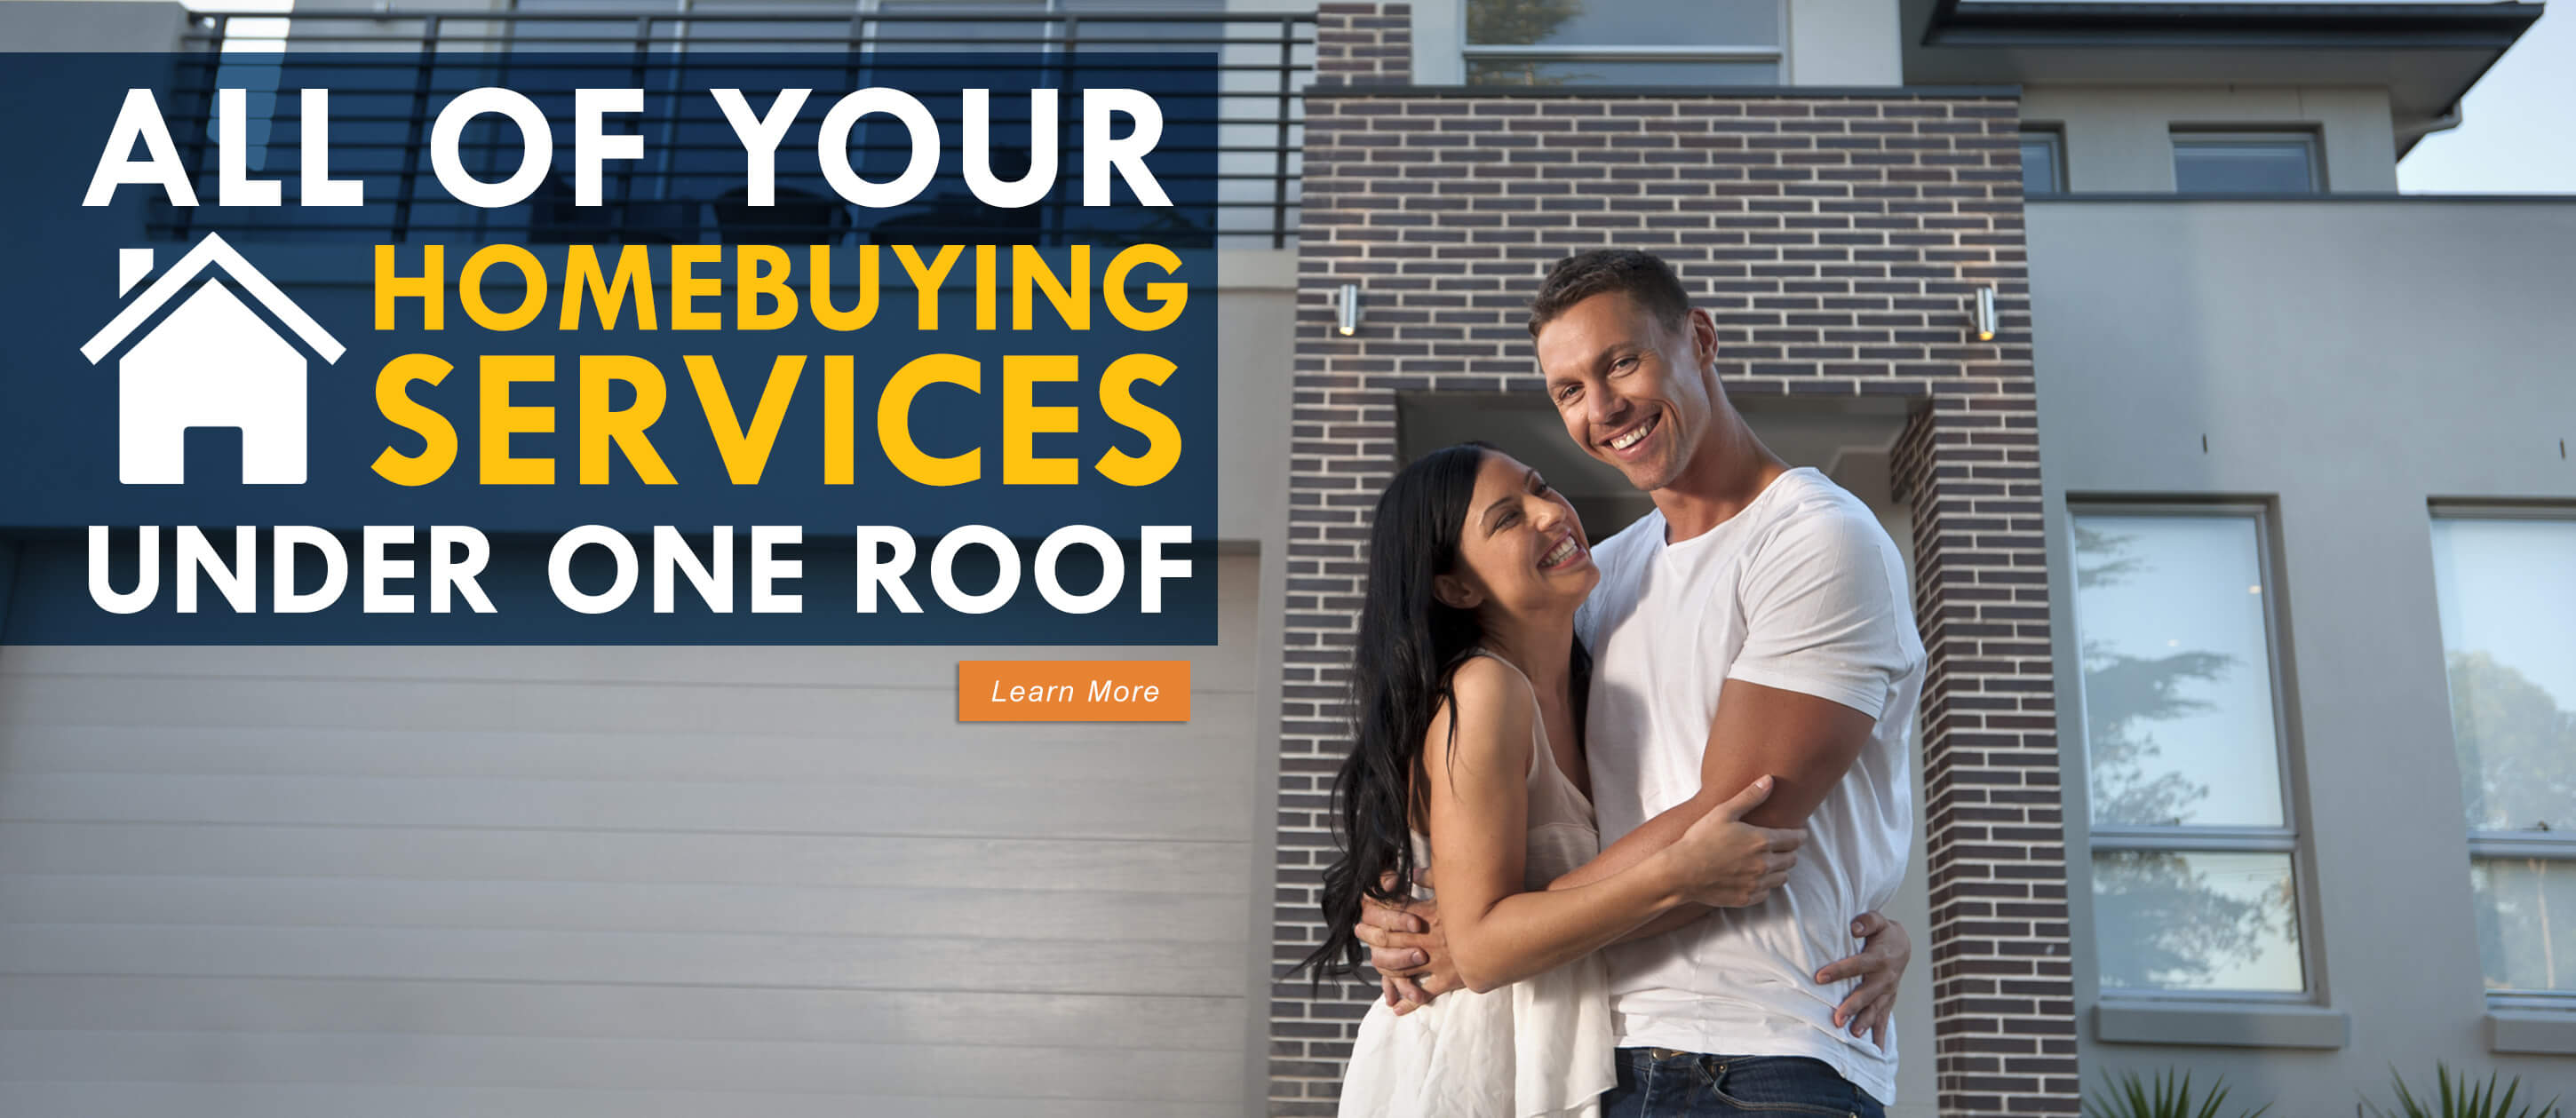 All of your Homebuying Services Under One Roof. Learn more